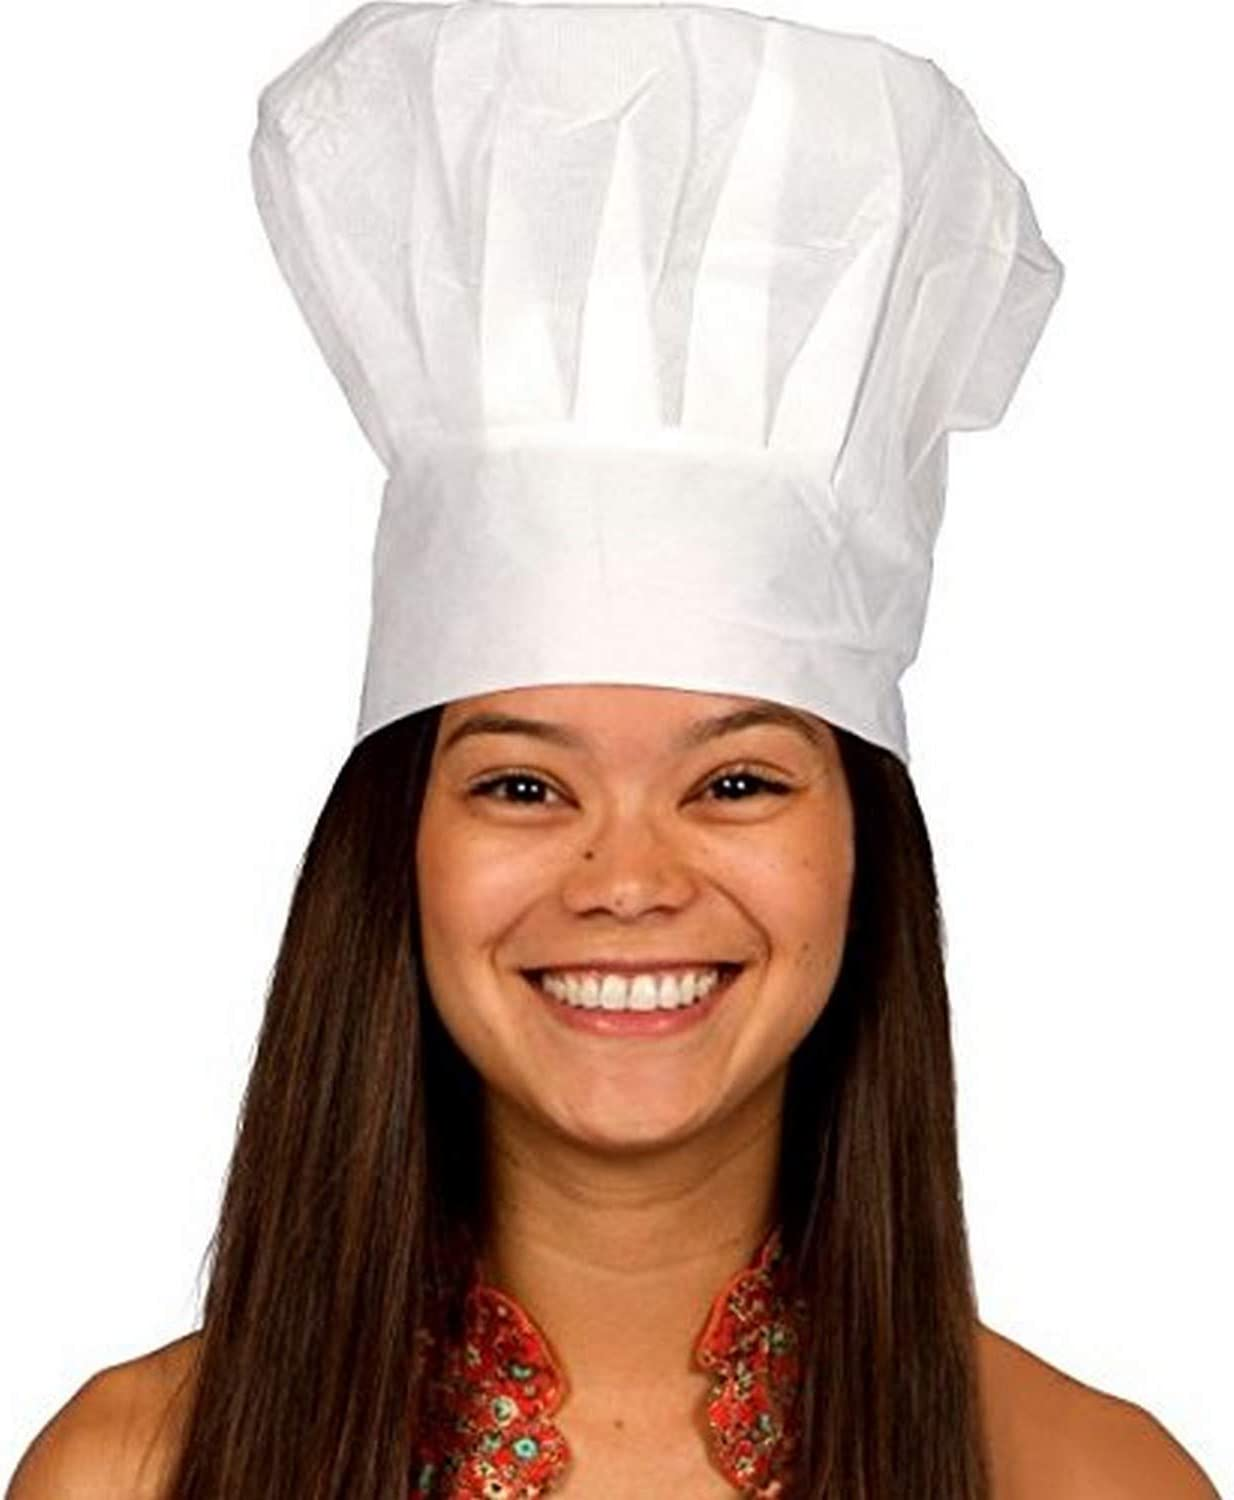 CHEF TALL HAT WHITE ADULT UNISEX PROFESSIONAL CHEFS HAT FANCY DRESS ACCESSORY